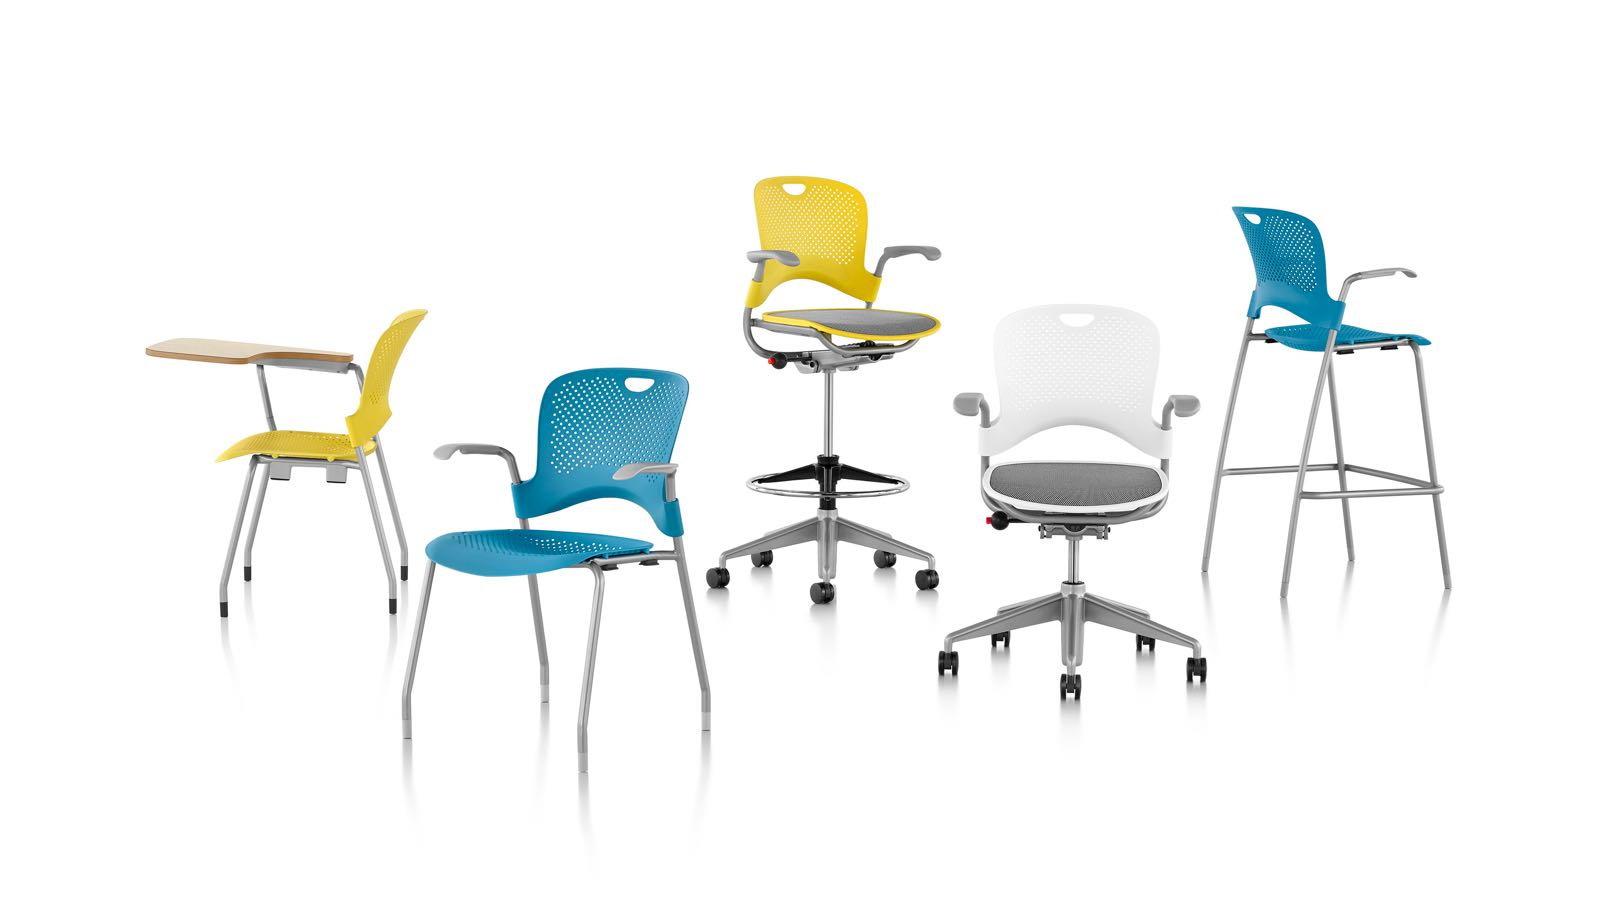 Caper seating family: multipurpose chairs and stools, stacking chairs and stools, and a stacking chair with tablet arm.